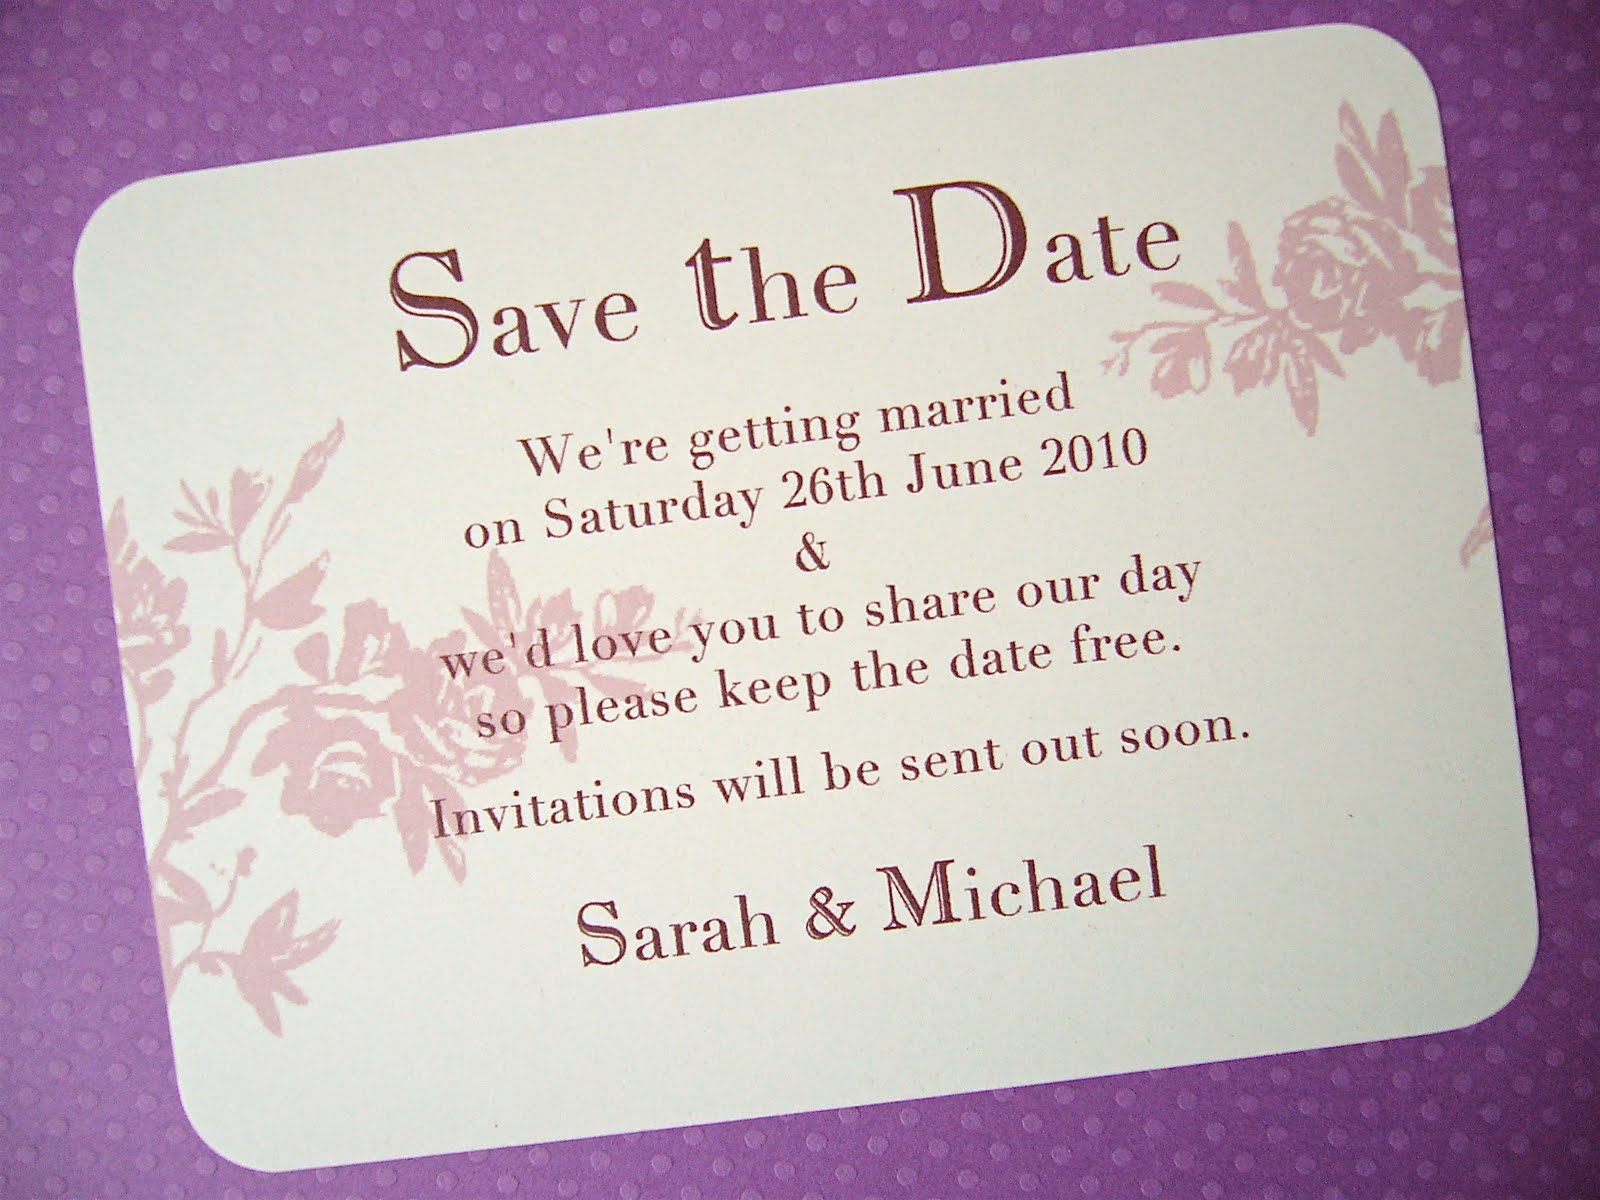 Arbee Vintage Wedding Craft Blog Save The Date For Our Brand New Car